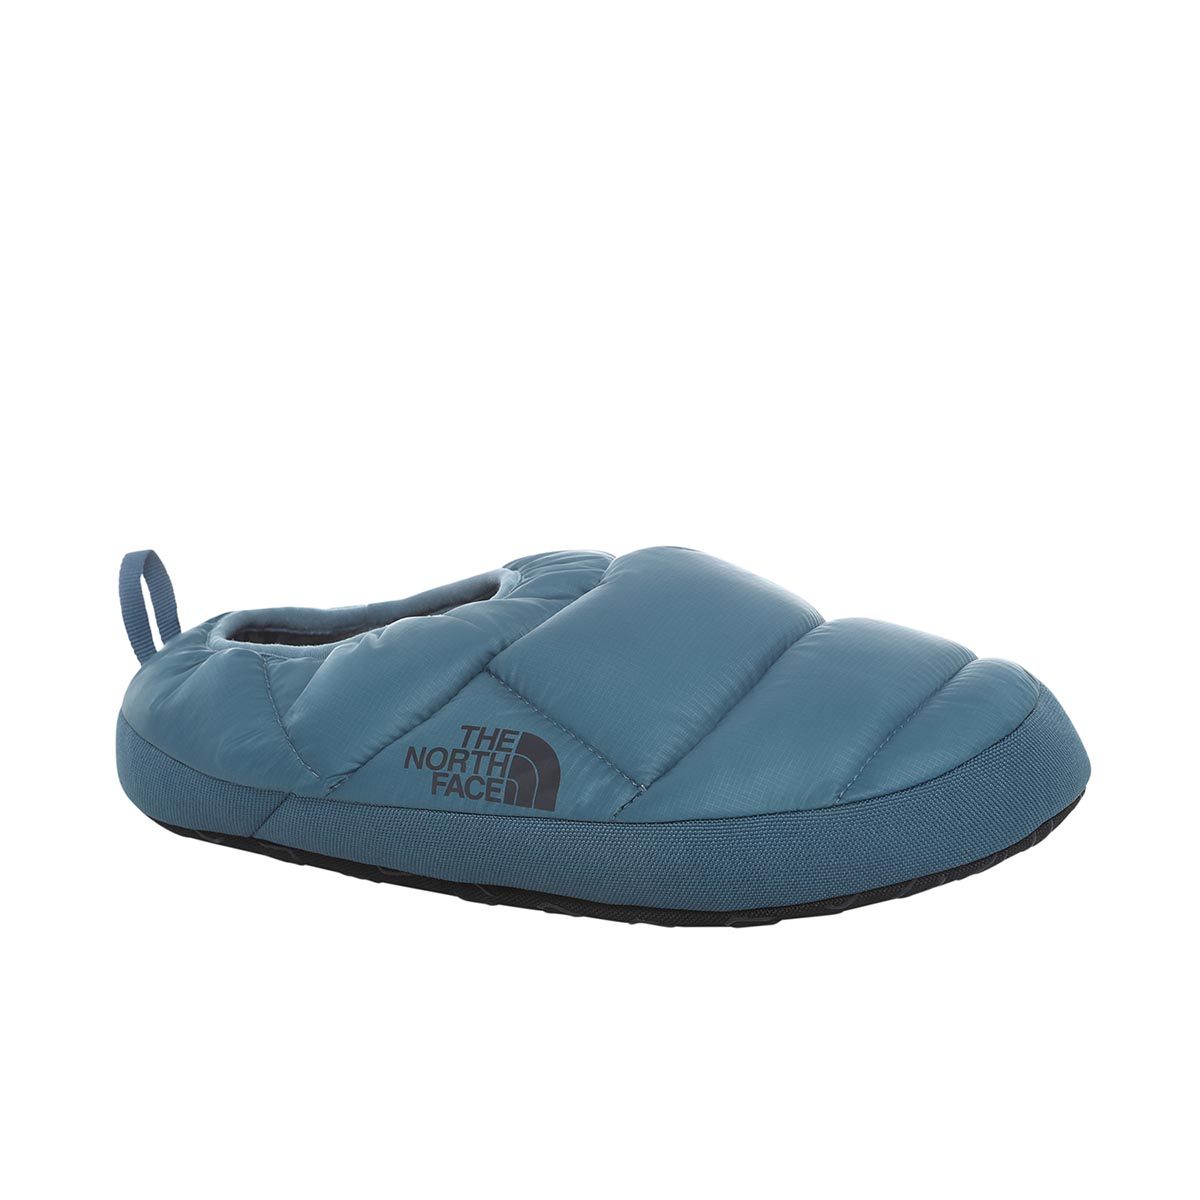 THE NORTH FACE - NSE III TENT MULES